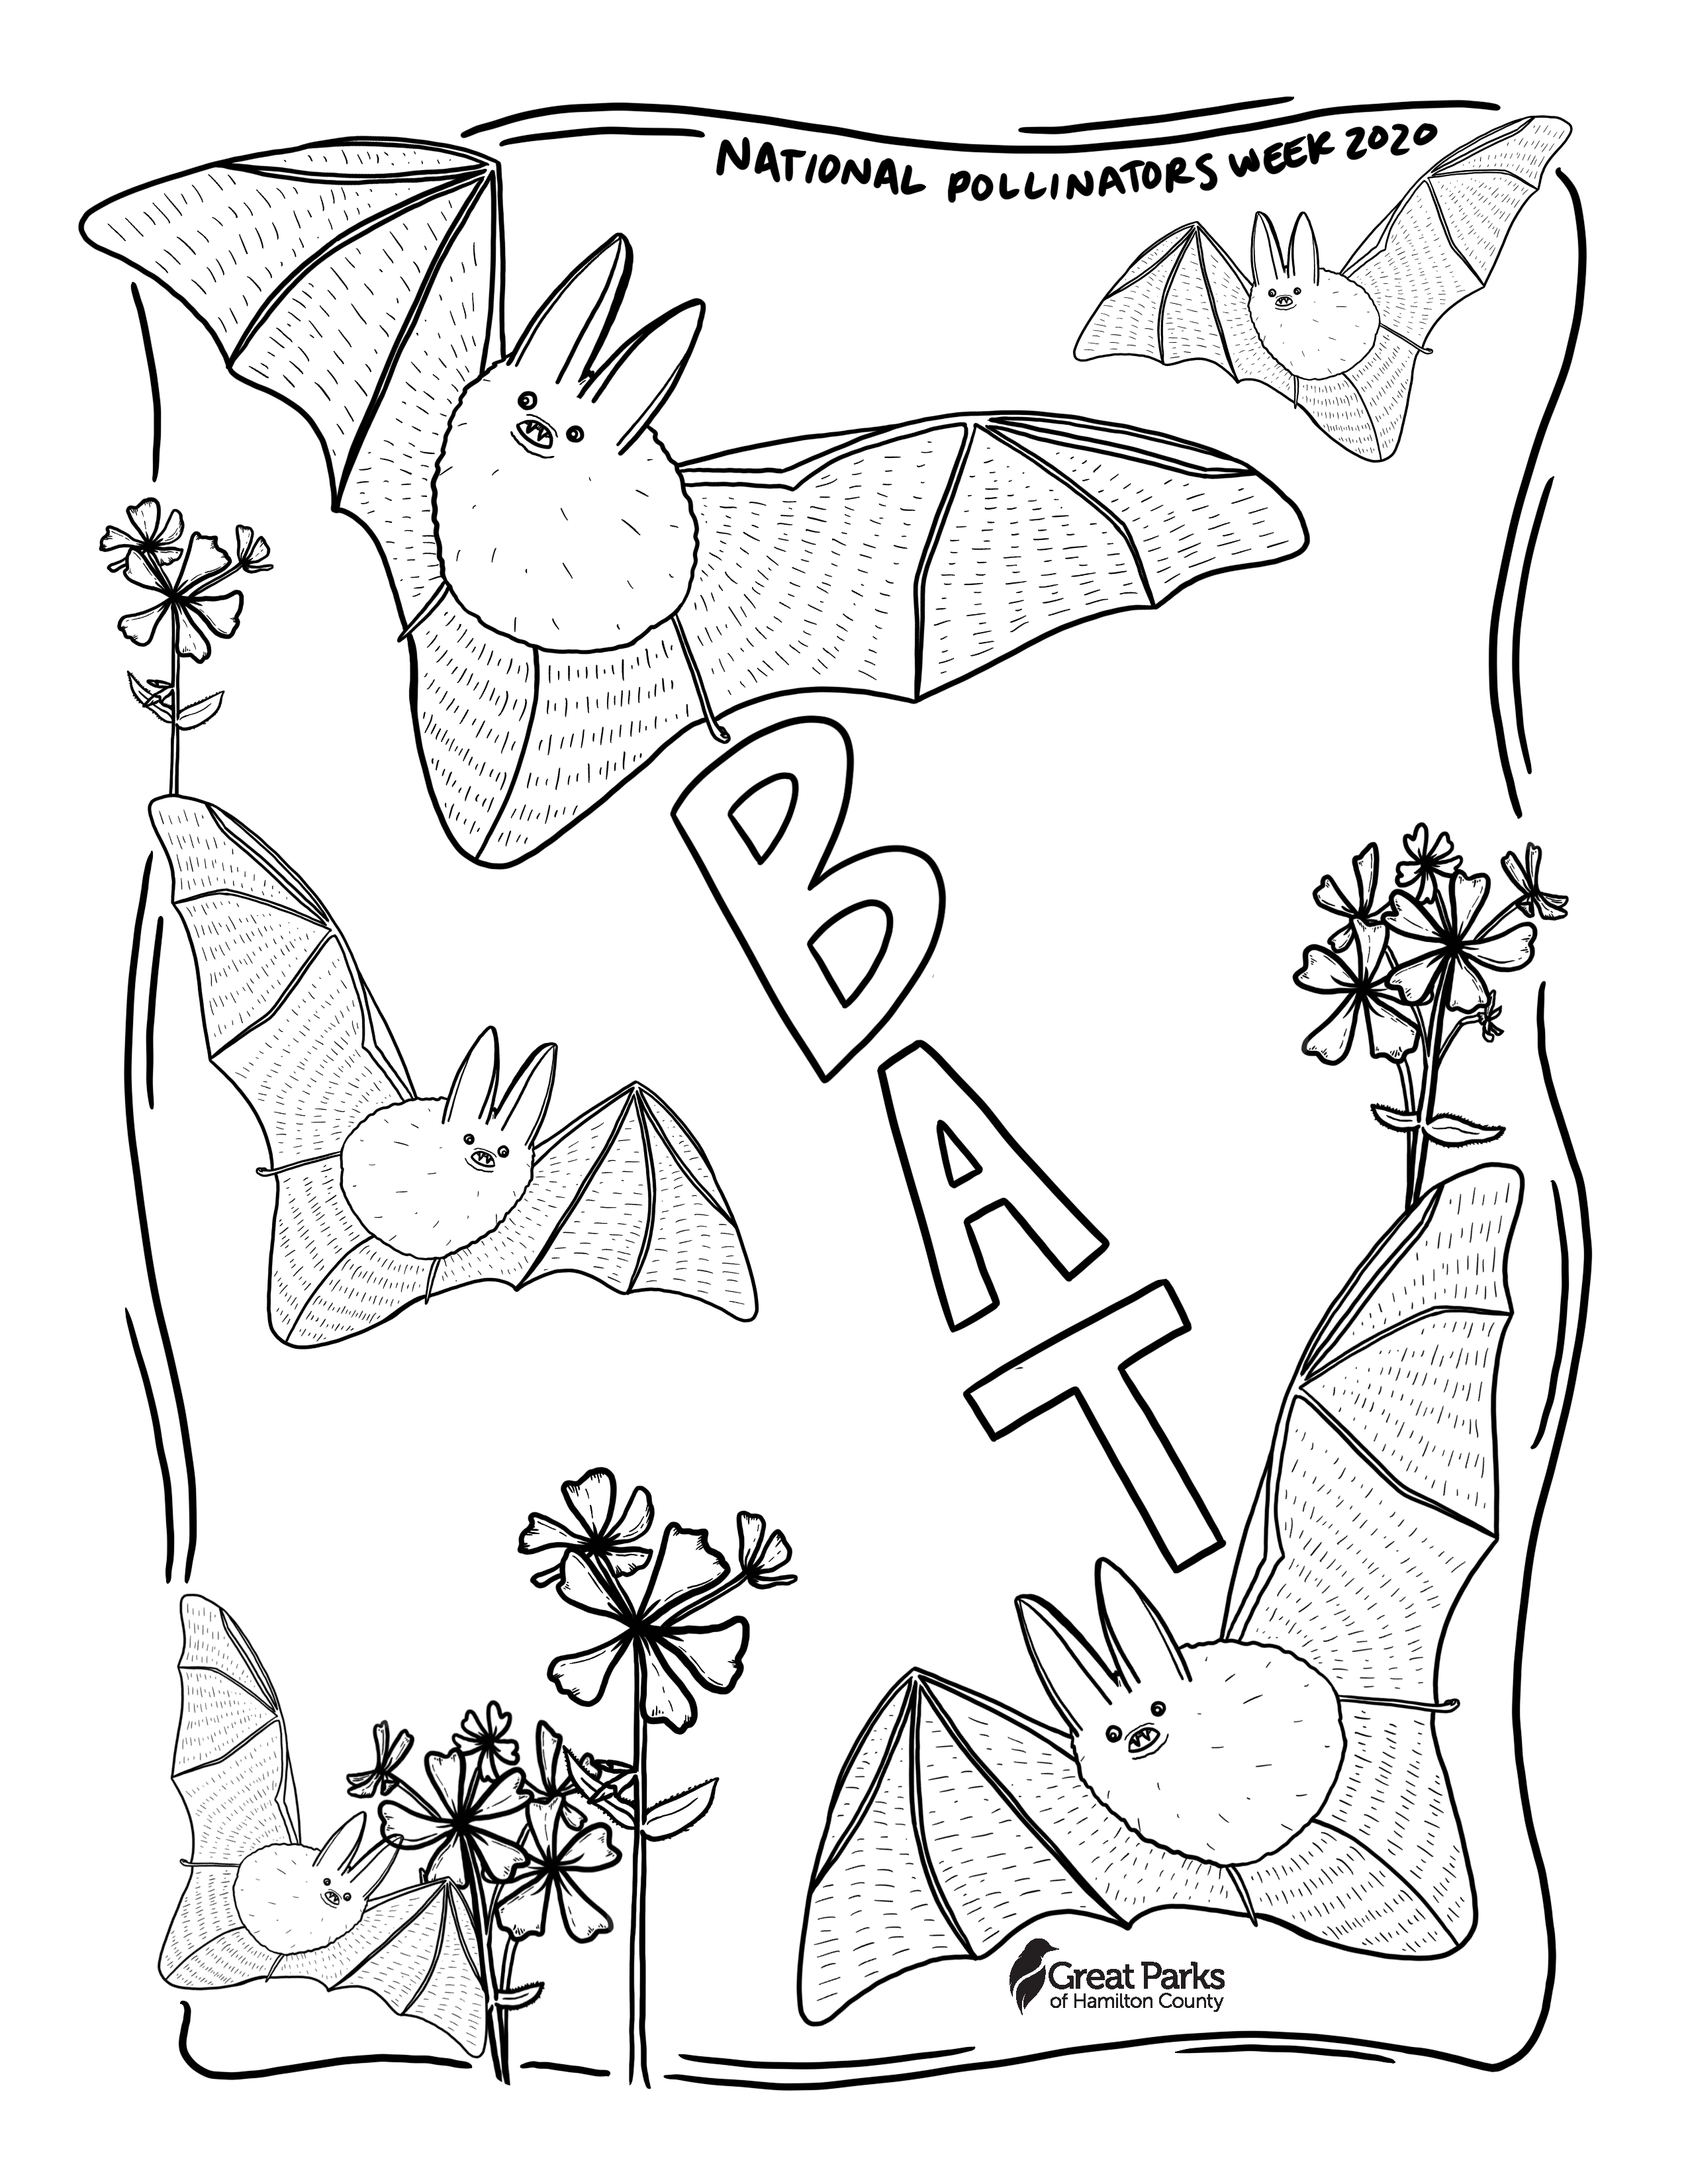 A drawing of bats for National Pollinators Week 2020.